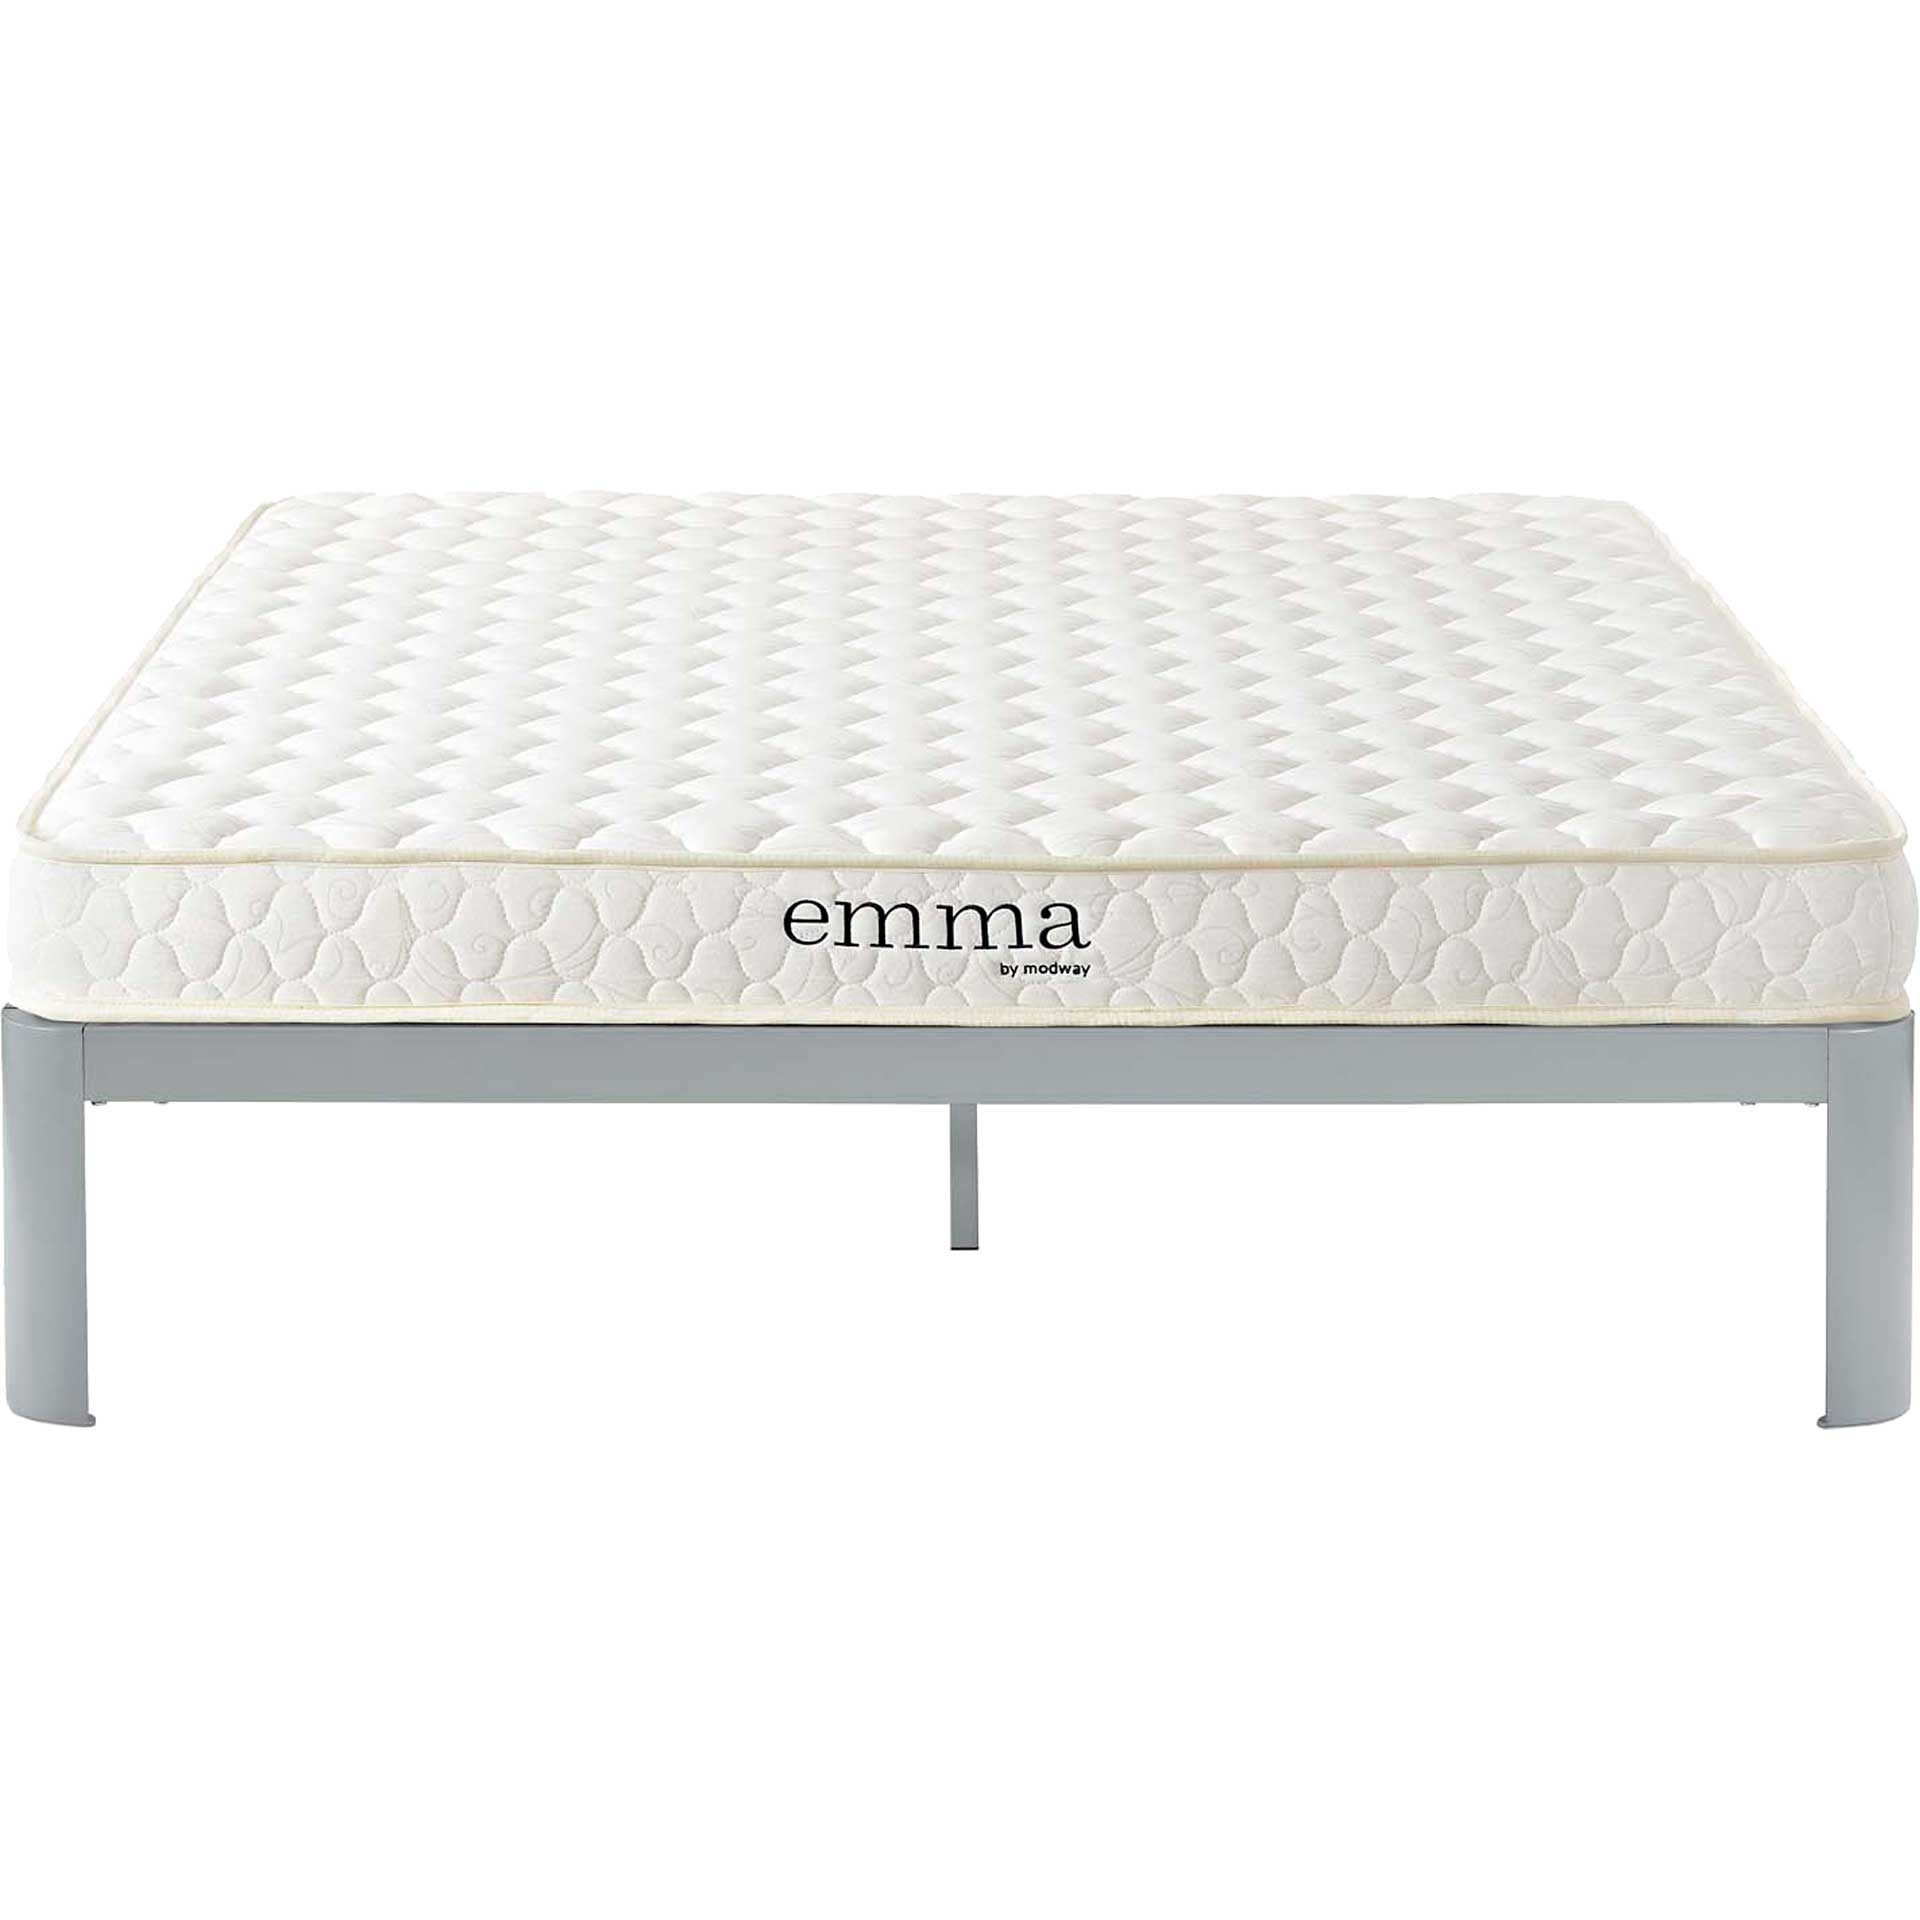 "Emma 6"" Memory Foam Mattress White"